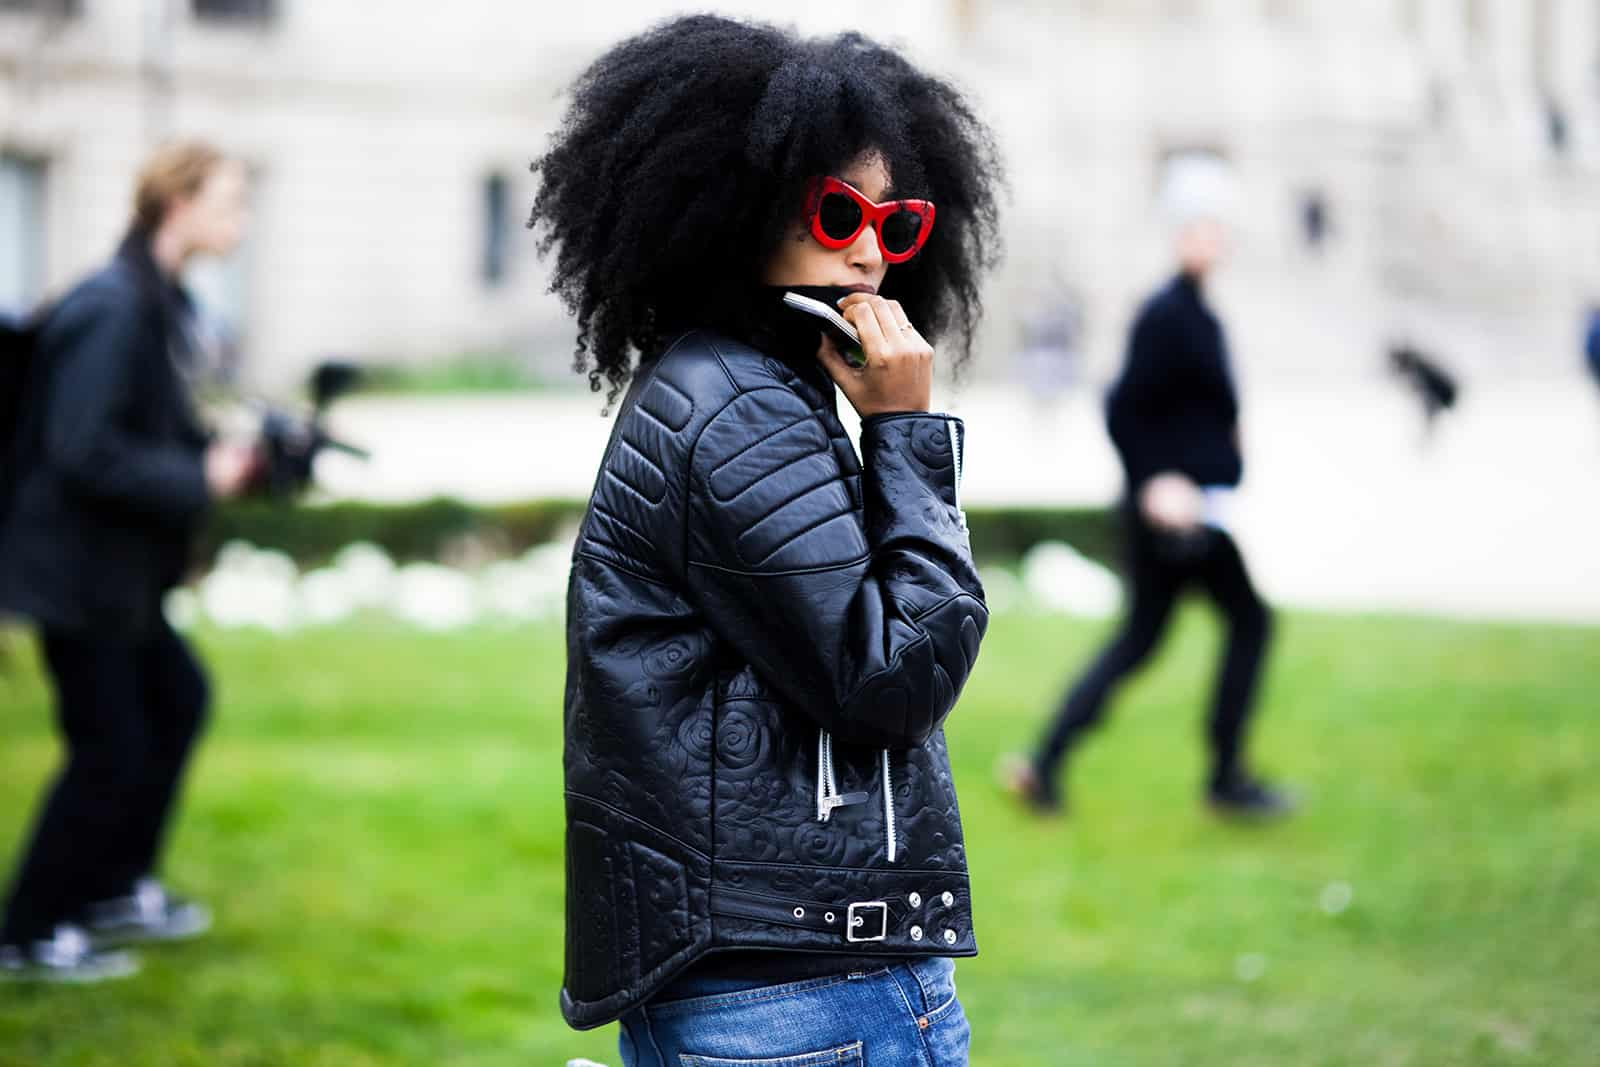 shotbygio-george-angelis-julia-sarr-jamois-paris-fashion-week-fall-winter-2015-2016-street-style-2329